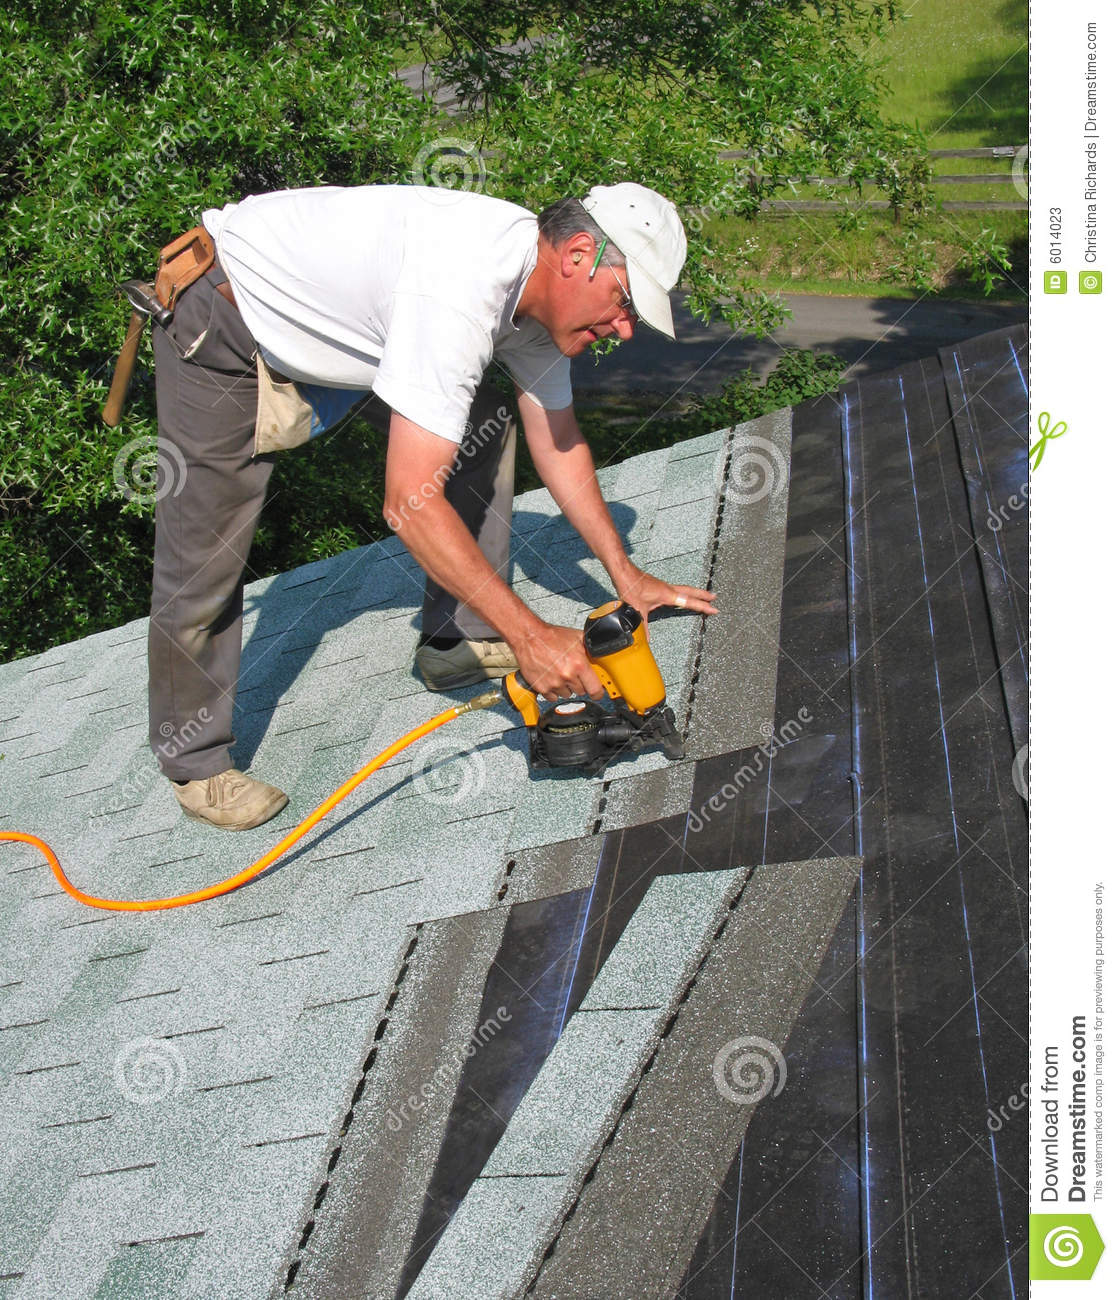 Man attaches shingles to roof